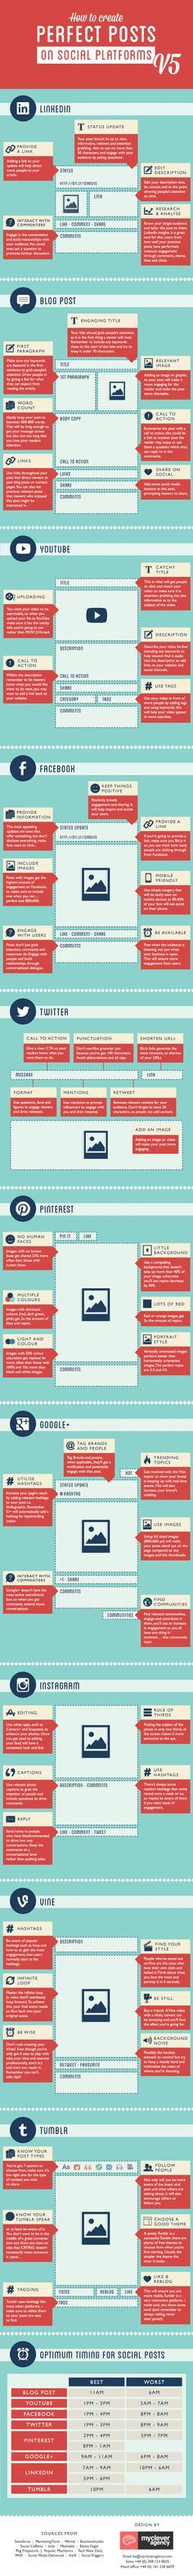 373 best SOCIAL MEDIA MARKETING images on Pinterest Social media - marketing report